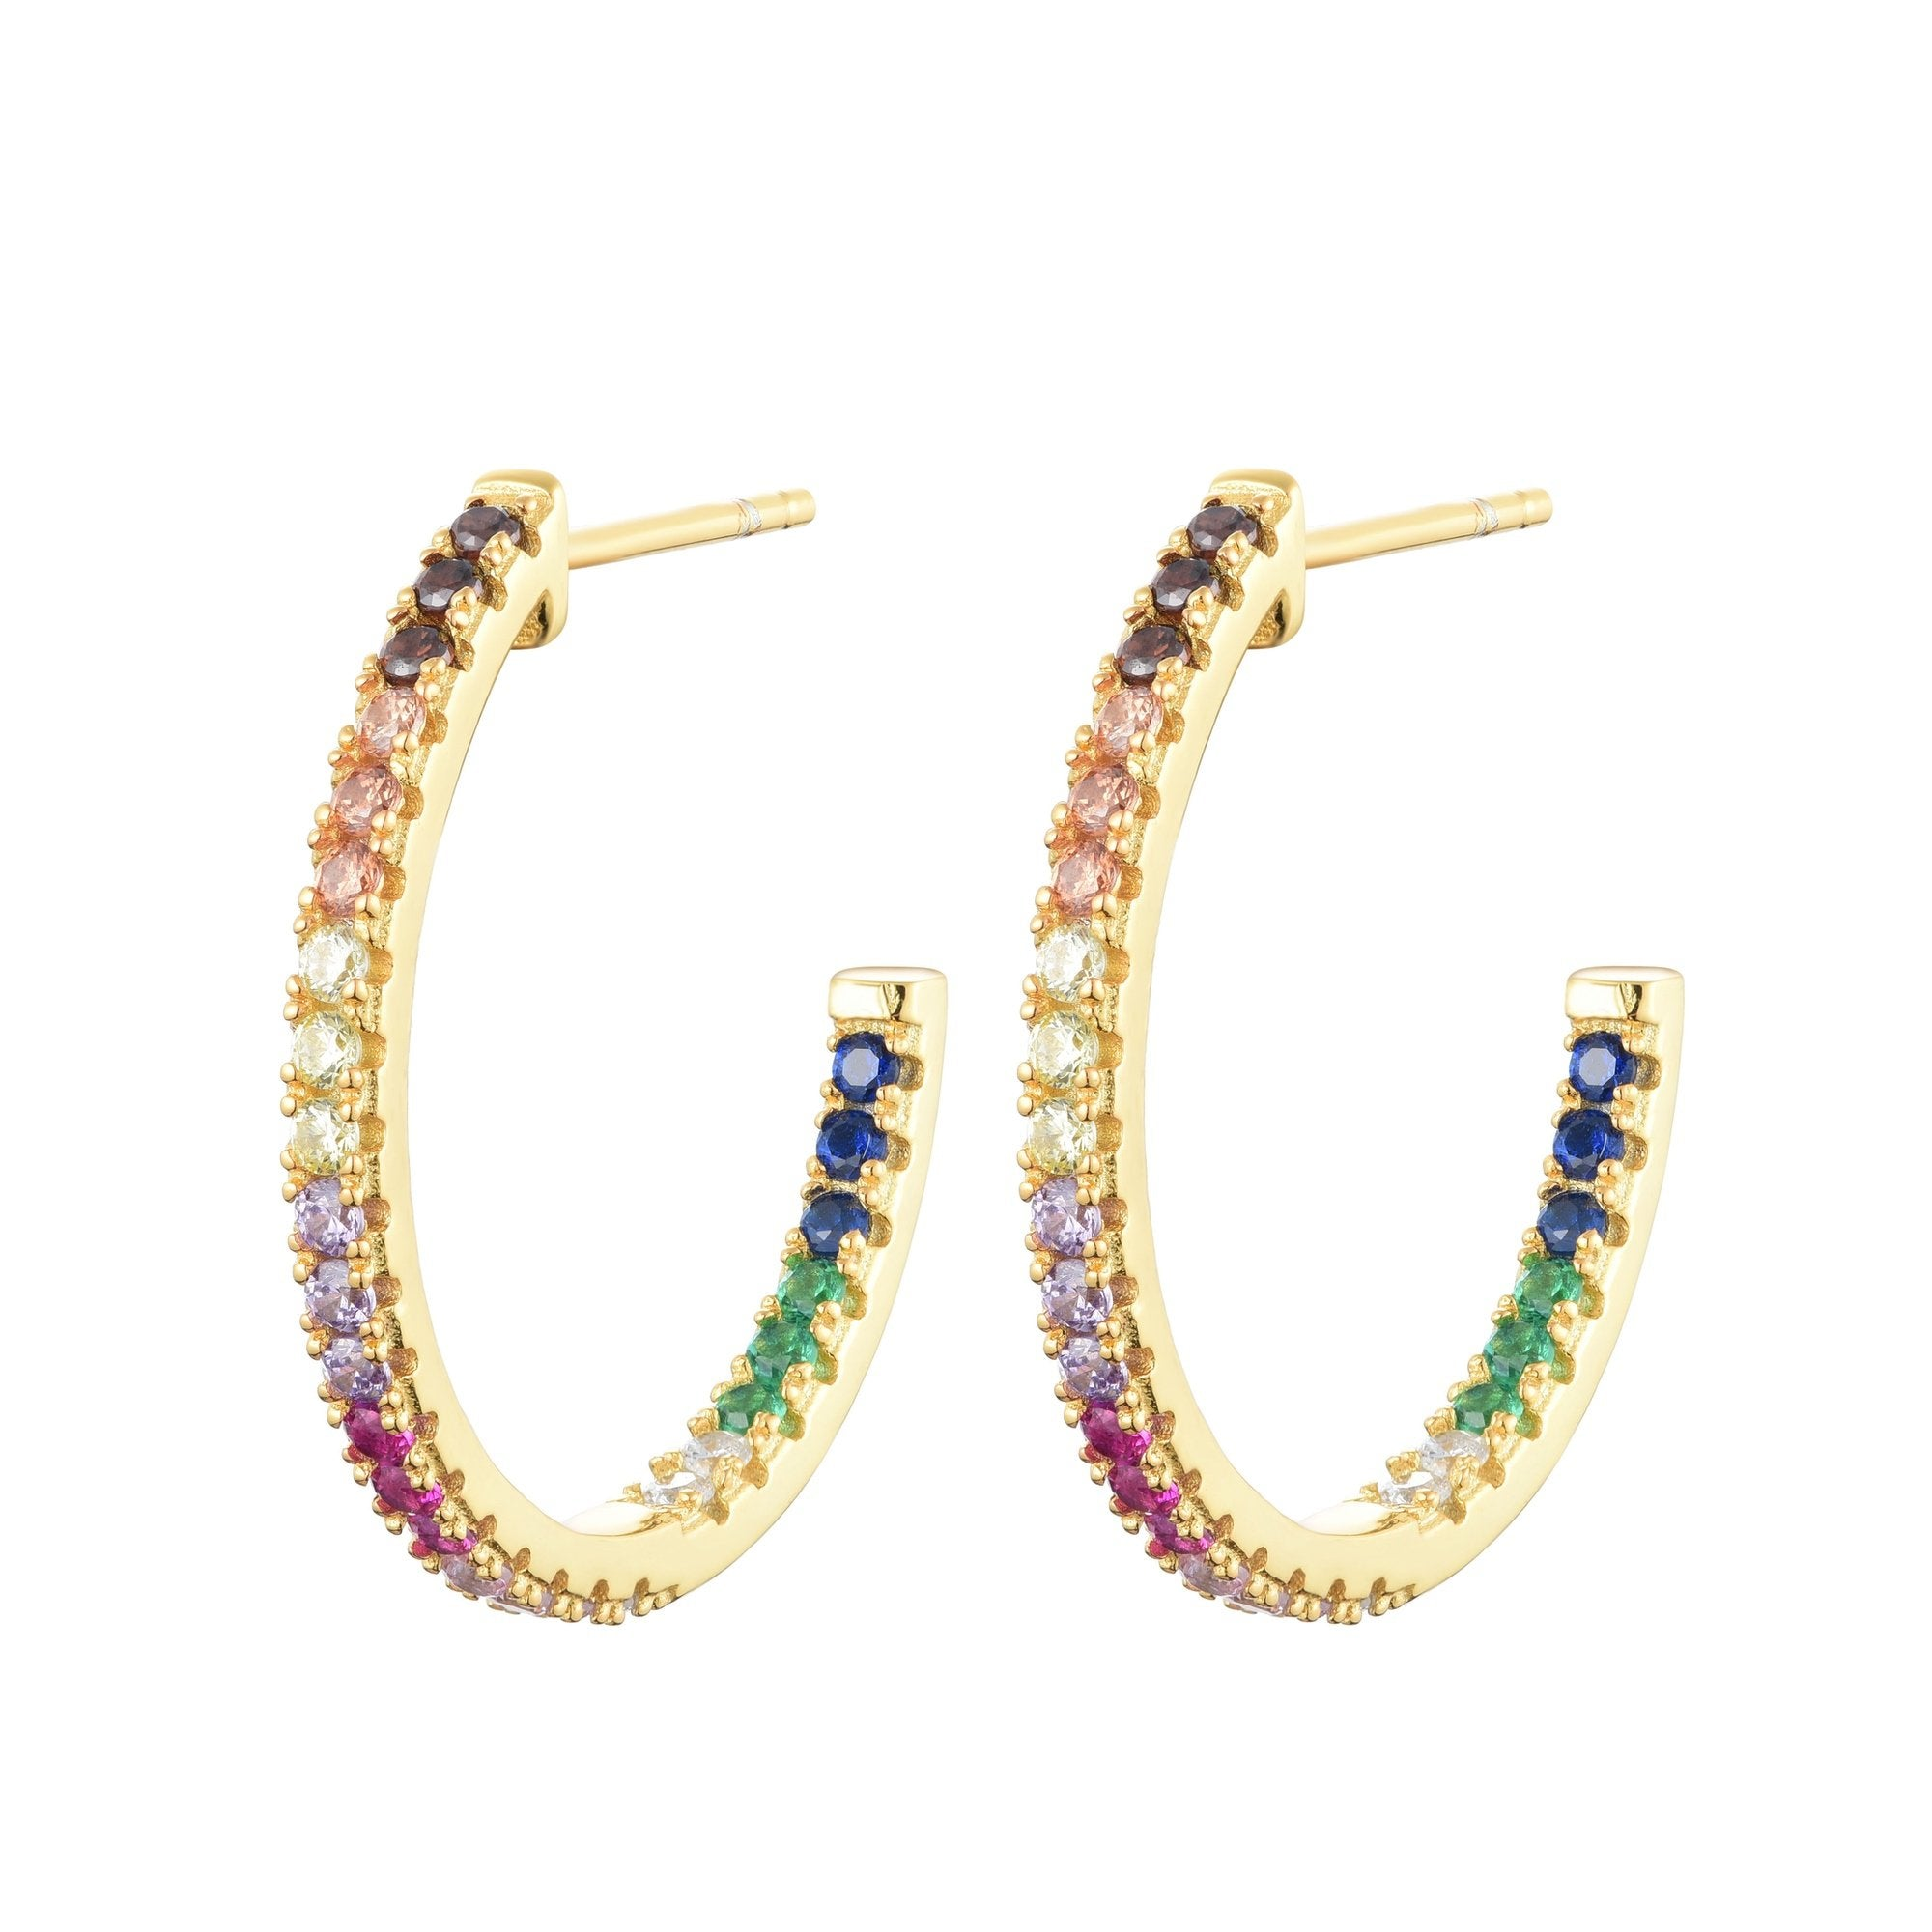 Ferentina | Macaron Hoops | 925 Silver | Multicolor CZ | 18K Gold Plated